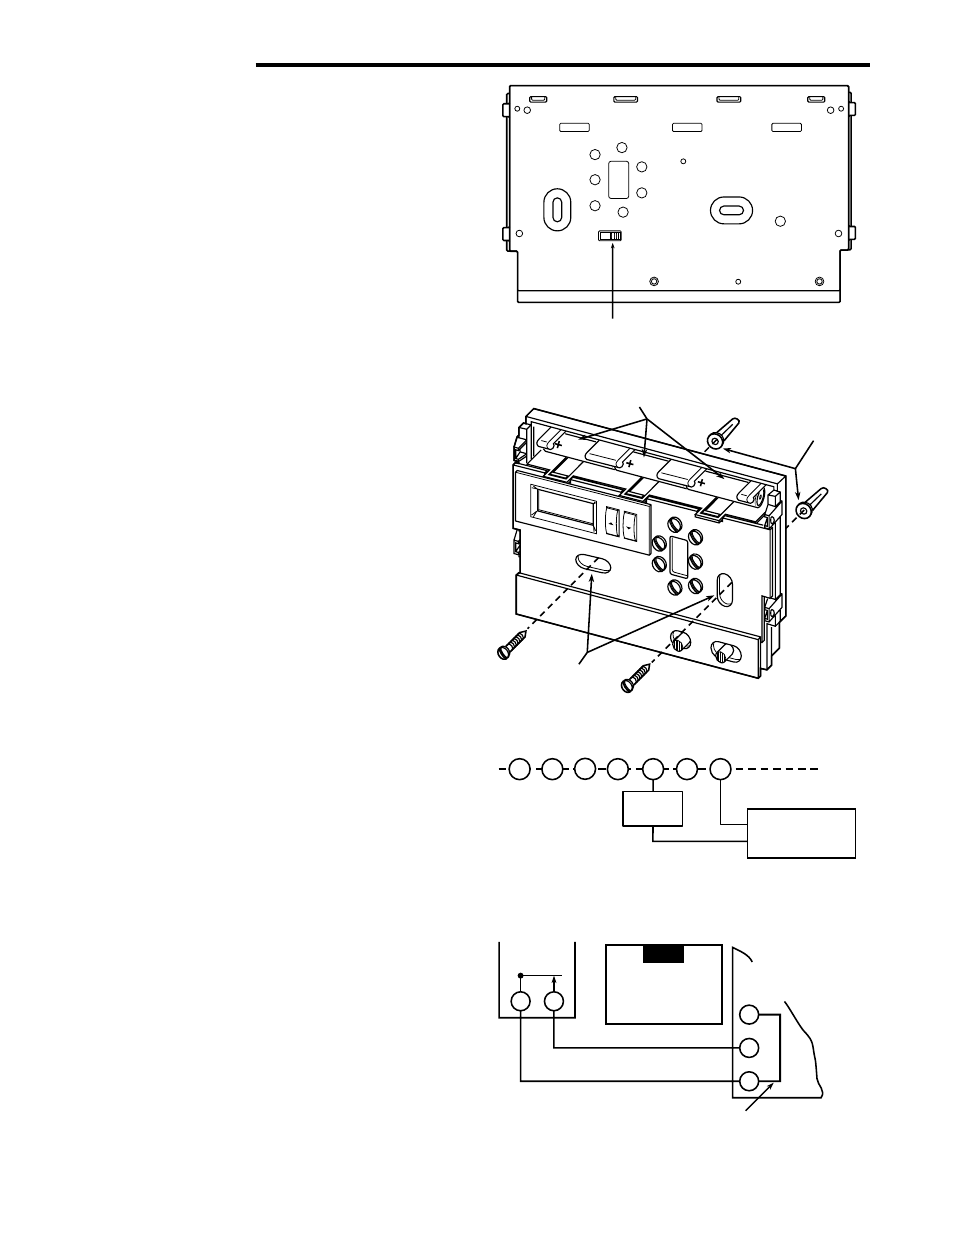 Installation, Remove old thermostat, Attach thermostat base to wall | White  Rodgers 1F86-444 User Manual | Page 2 / 4